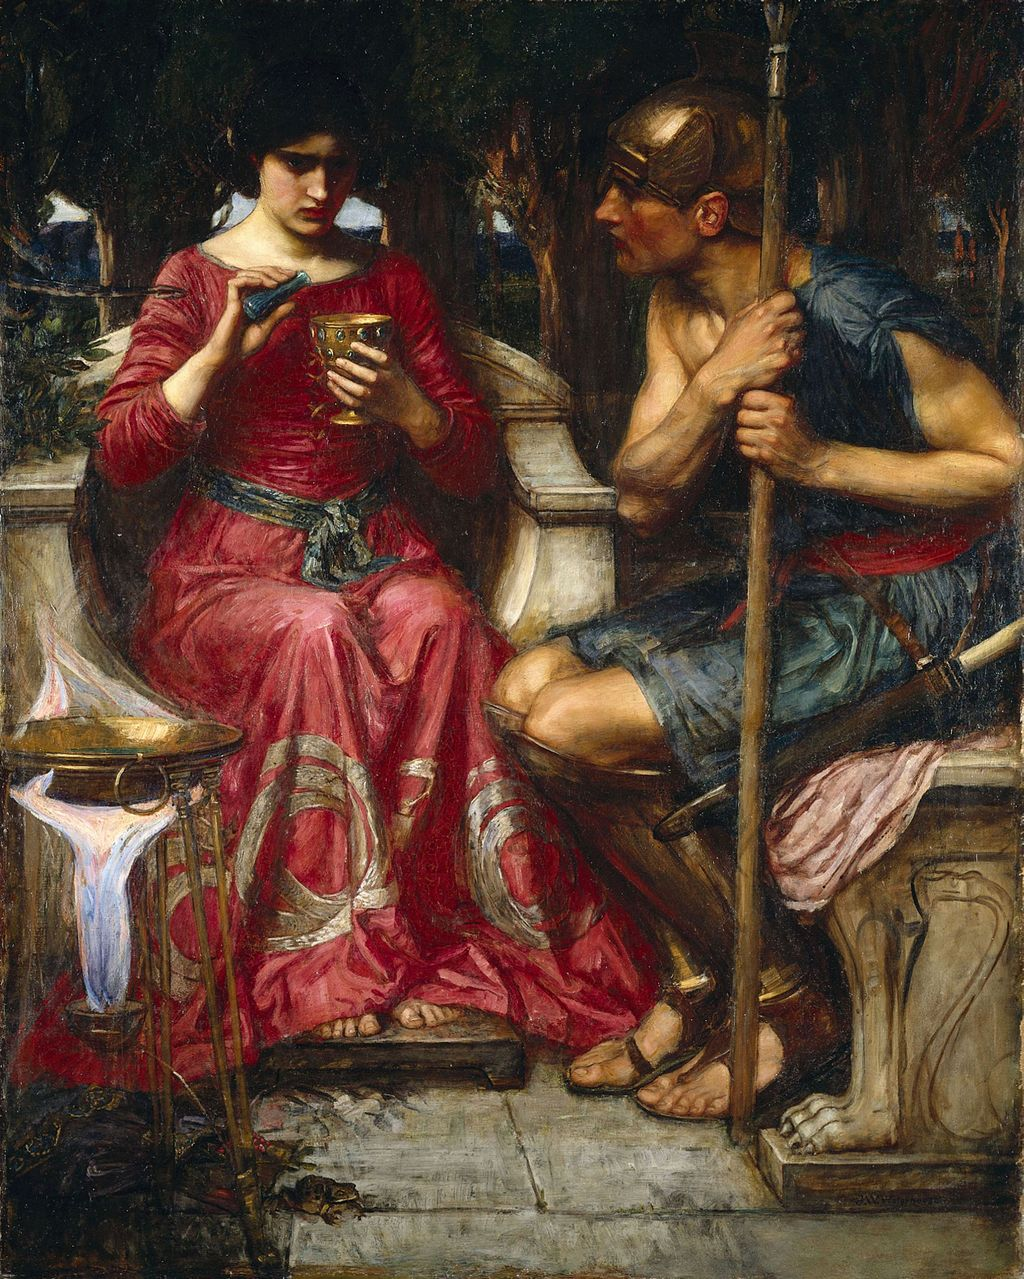 painting of Jason and Medea